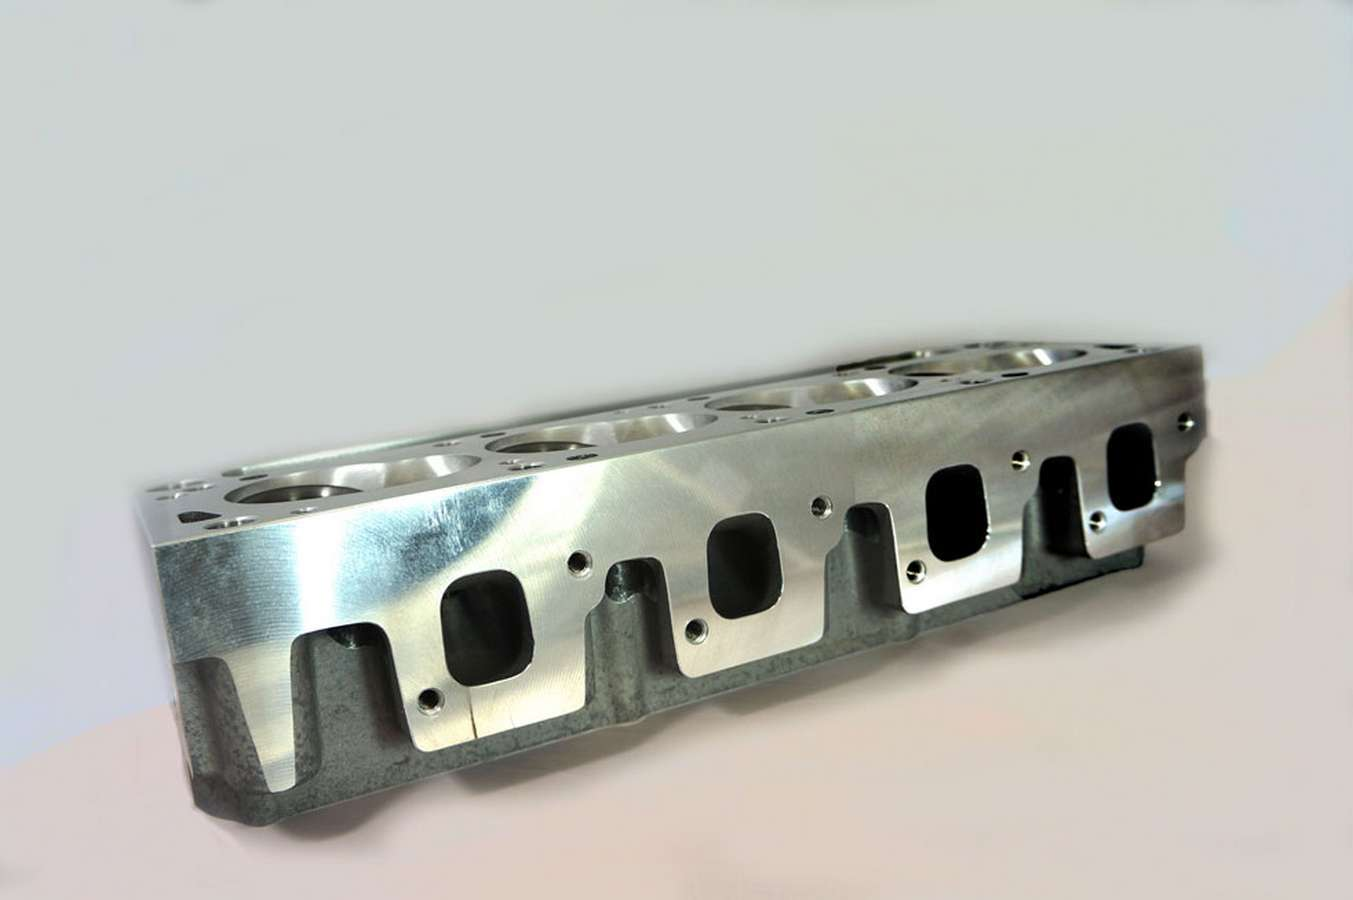 Cylinder Head Innovations SBF2V190B-67 Cylinder Head, 2V, Bare, 2.070 / 1.650 in Valve, 190 cc Intake, 67 cc Chamber, Aluminum, Ford Cleveland / Modified, Each